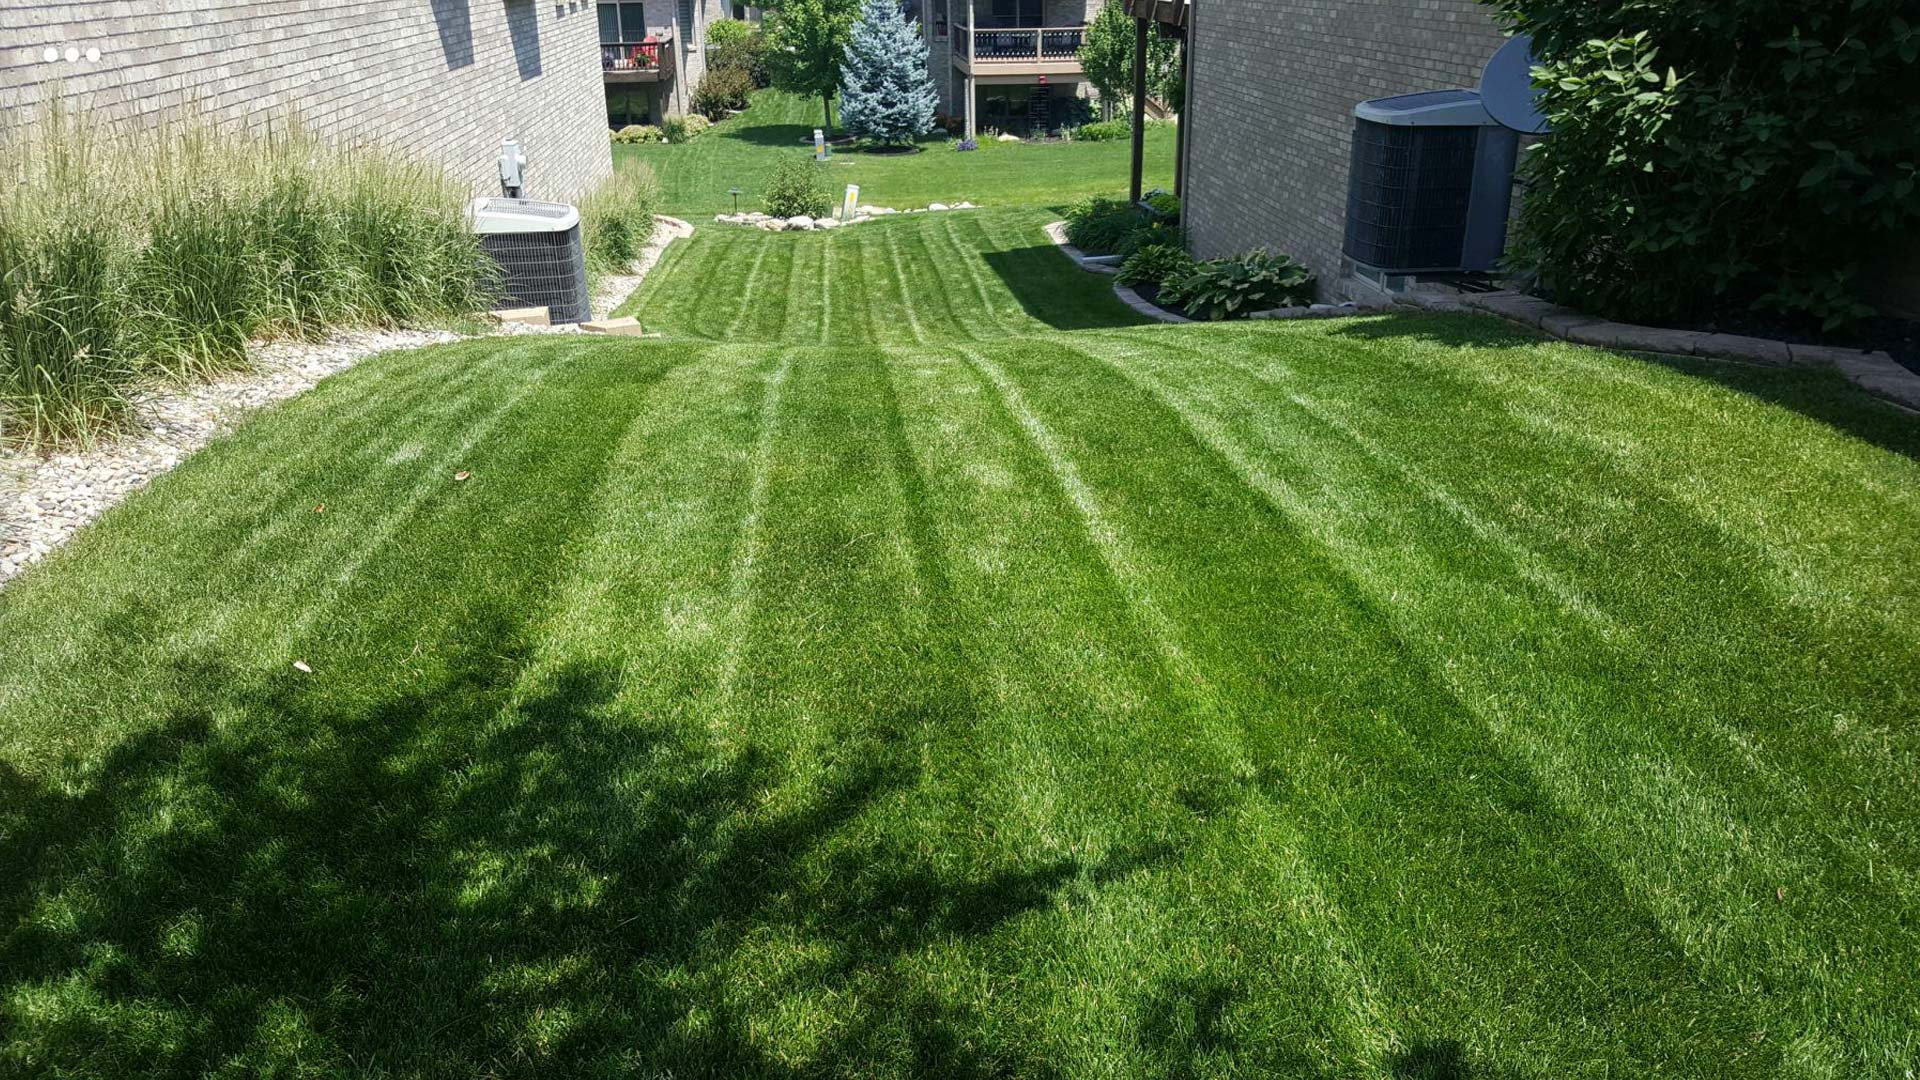 Healthy green lawn that was recently mowed at a home in Lincoln.